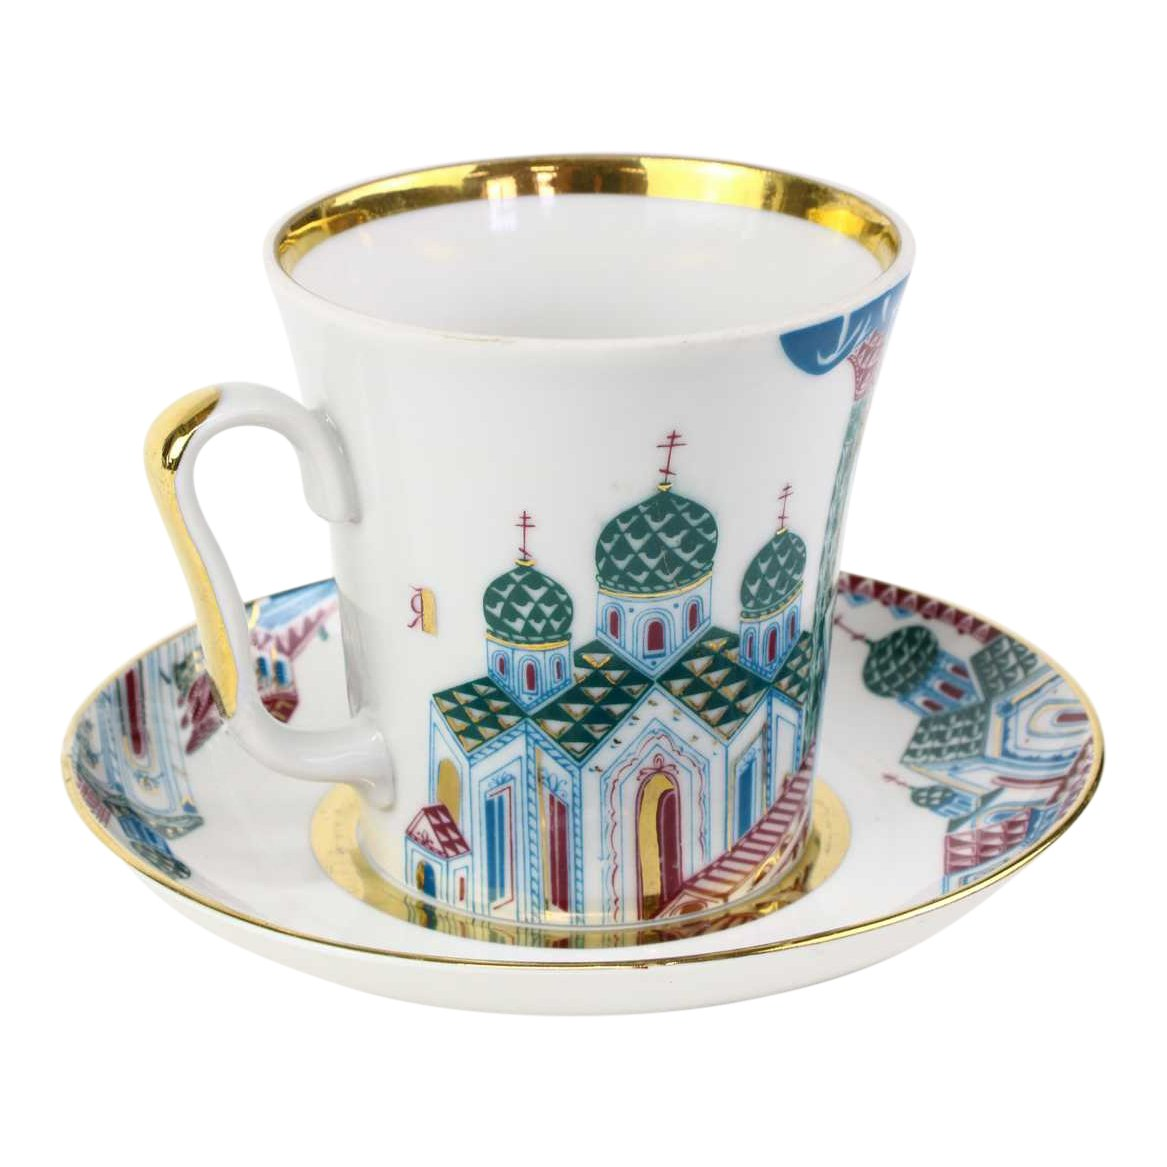 Vintage Russian Tea Cup And Saucer From The Imperial Porcelain